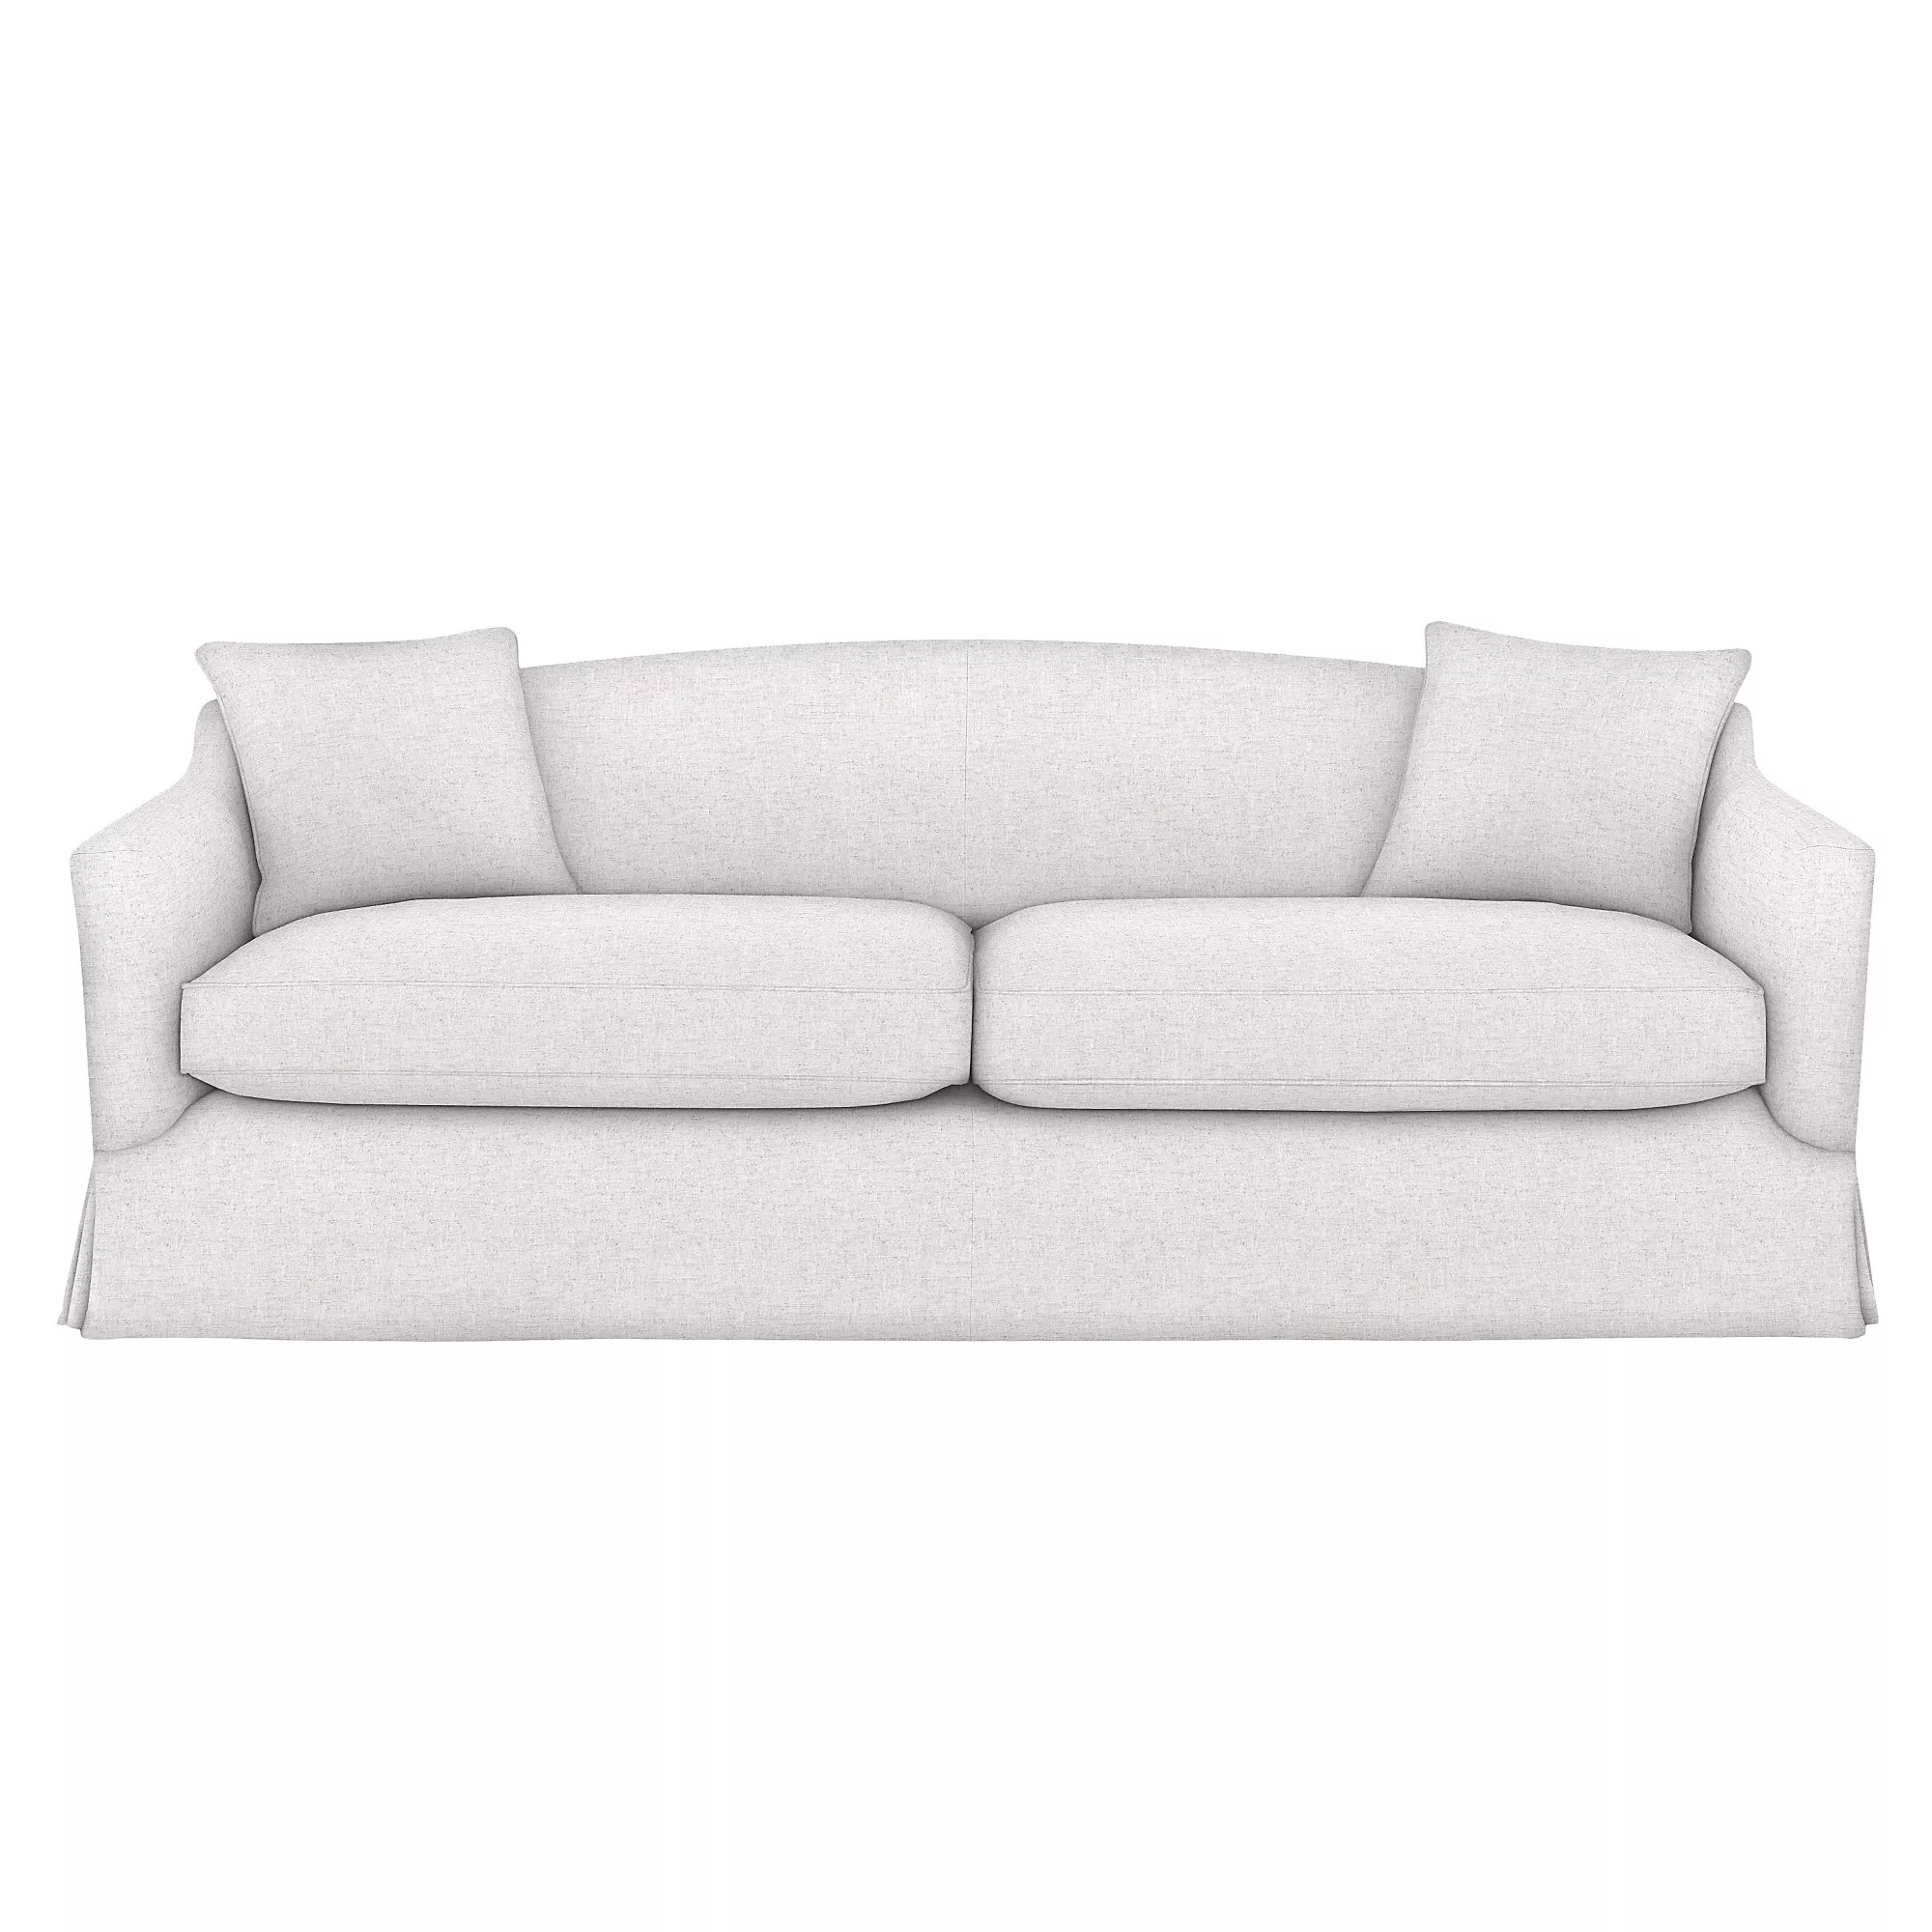 John Lewis Melrose Sofa John Lewis Melrose Loose Cover Grand 4 Seater Sofa With Scatter